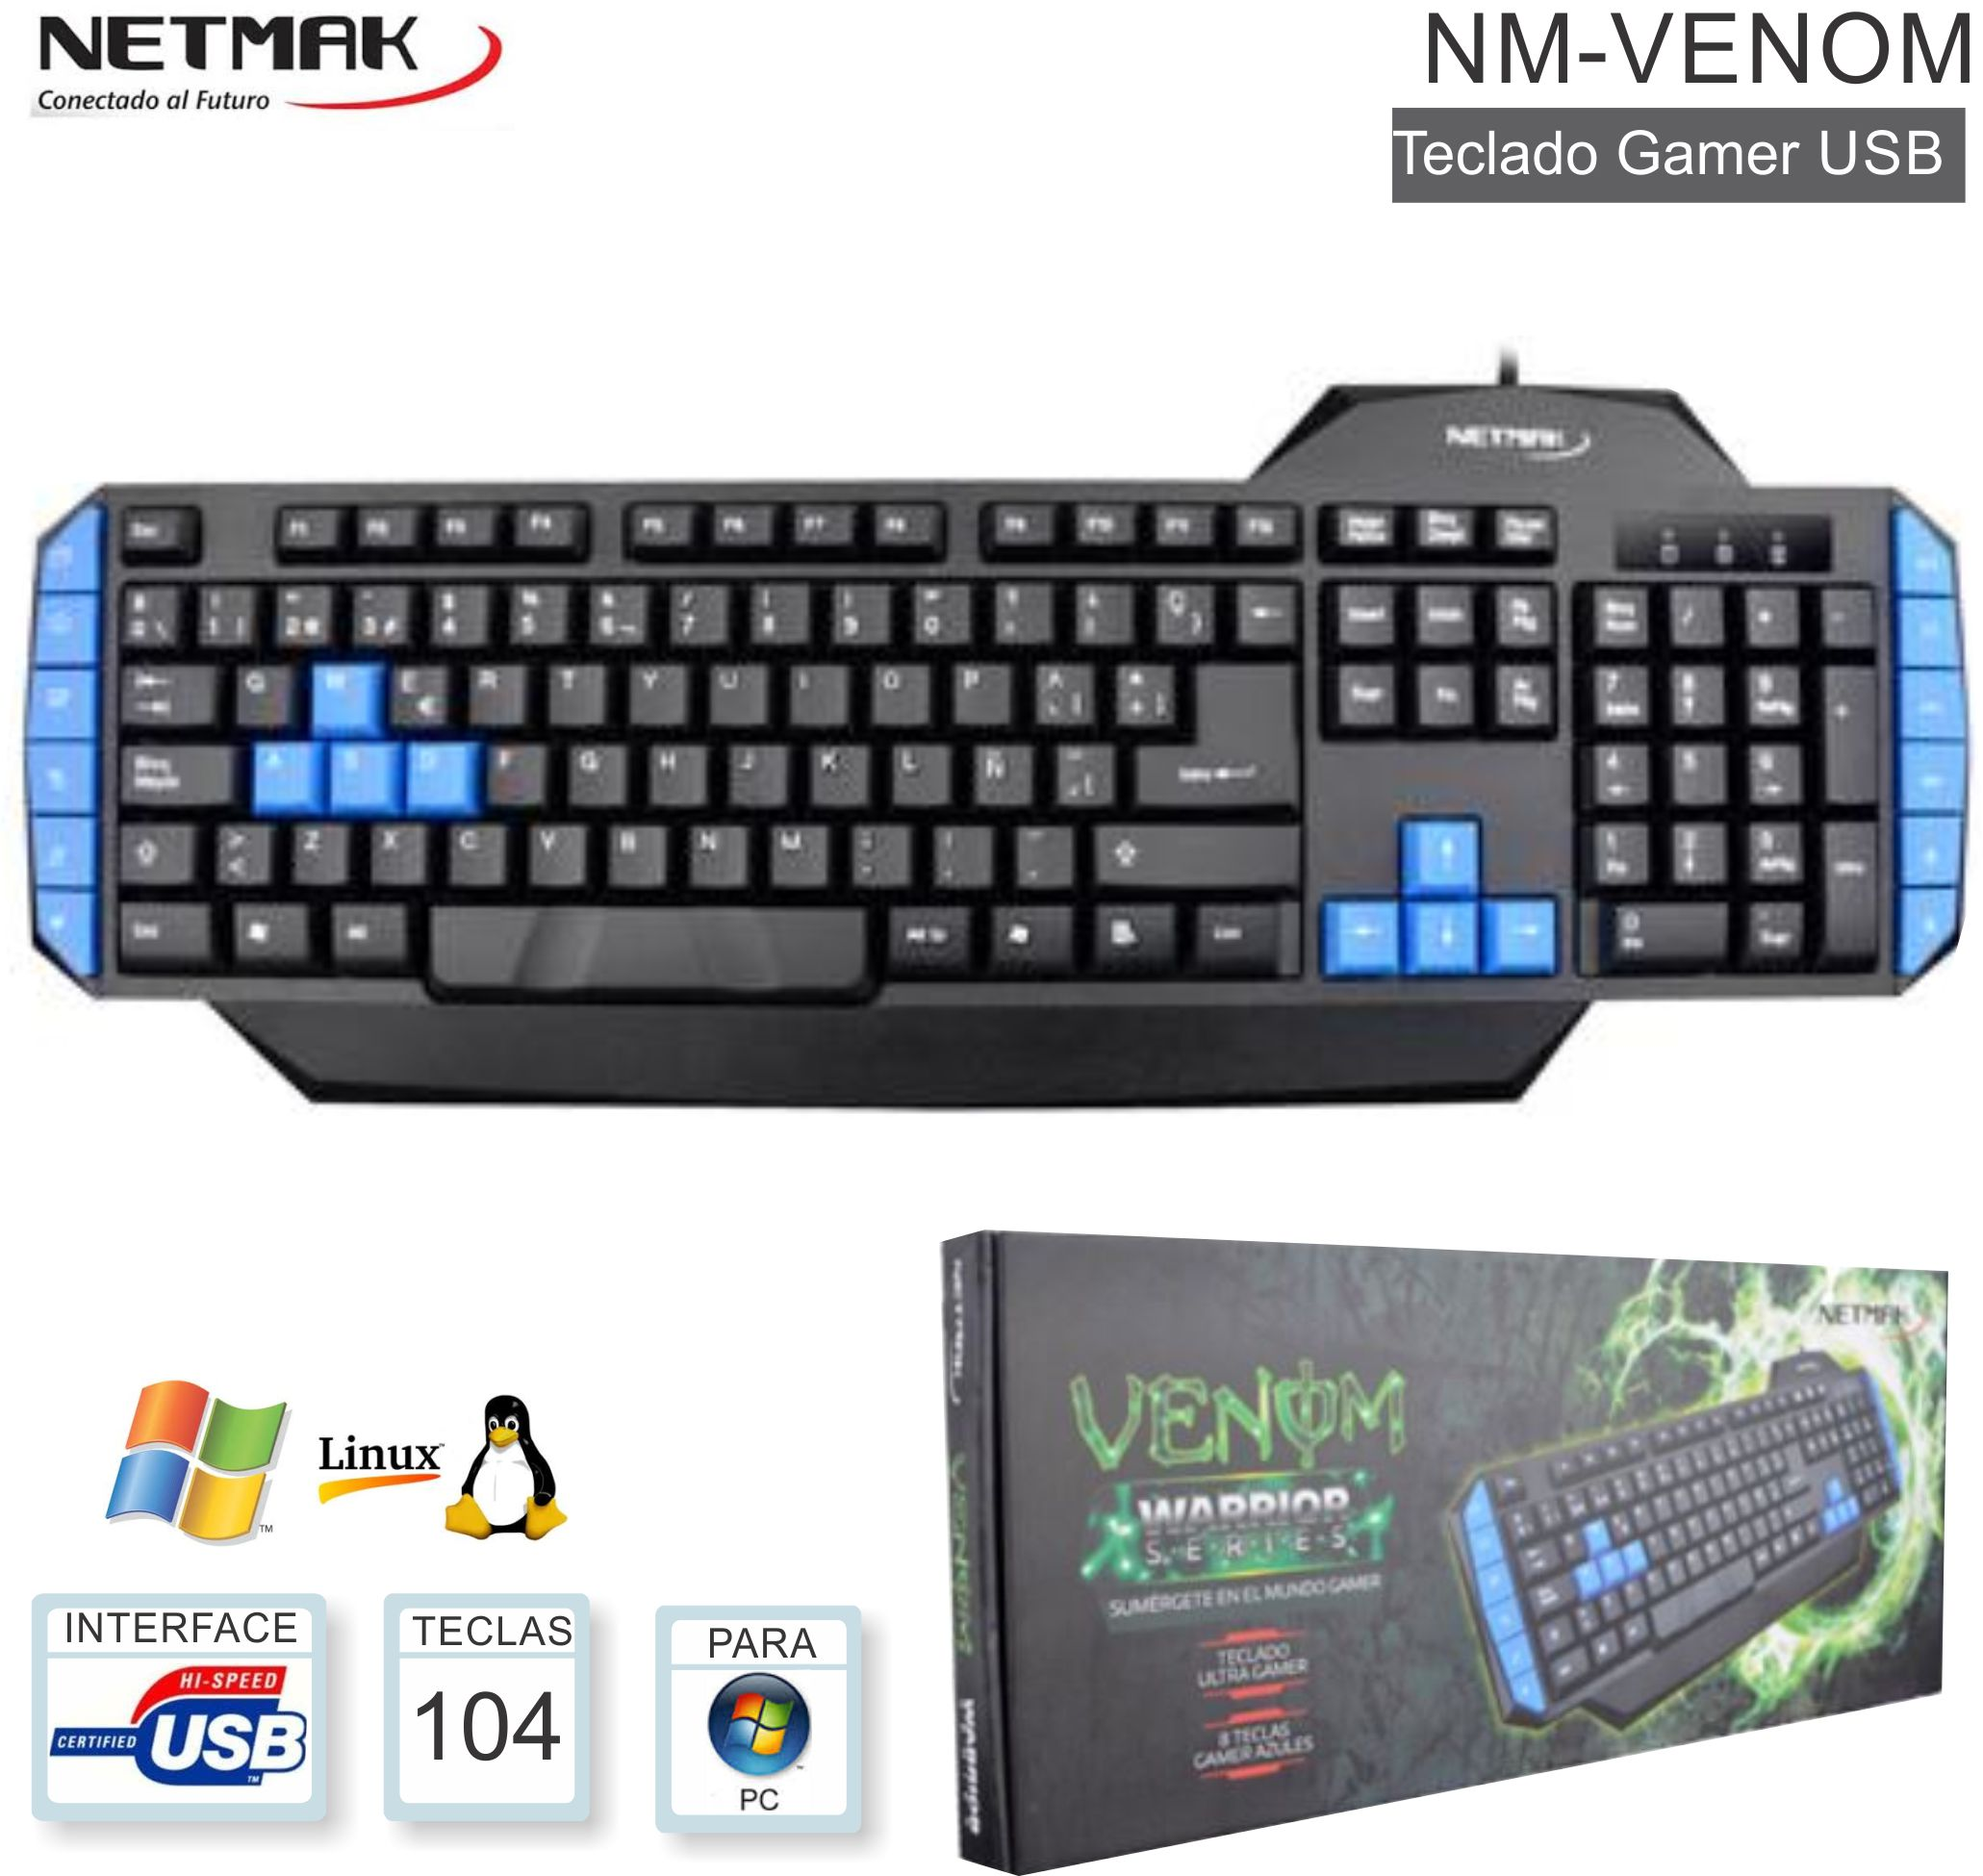 Teclado Gamer USB NETMAK NM-VENOM